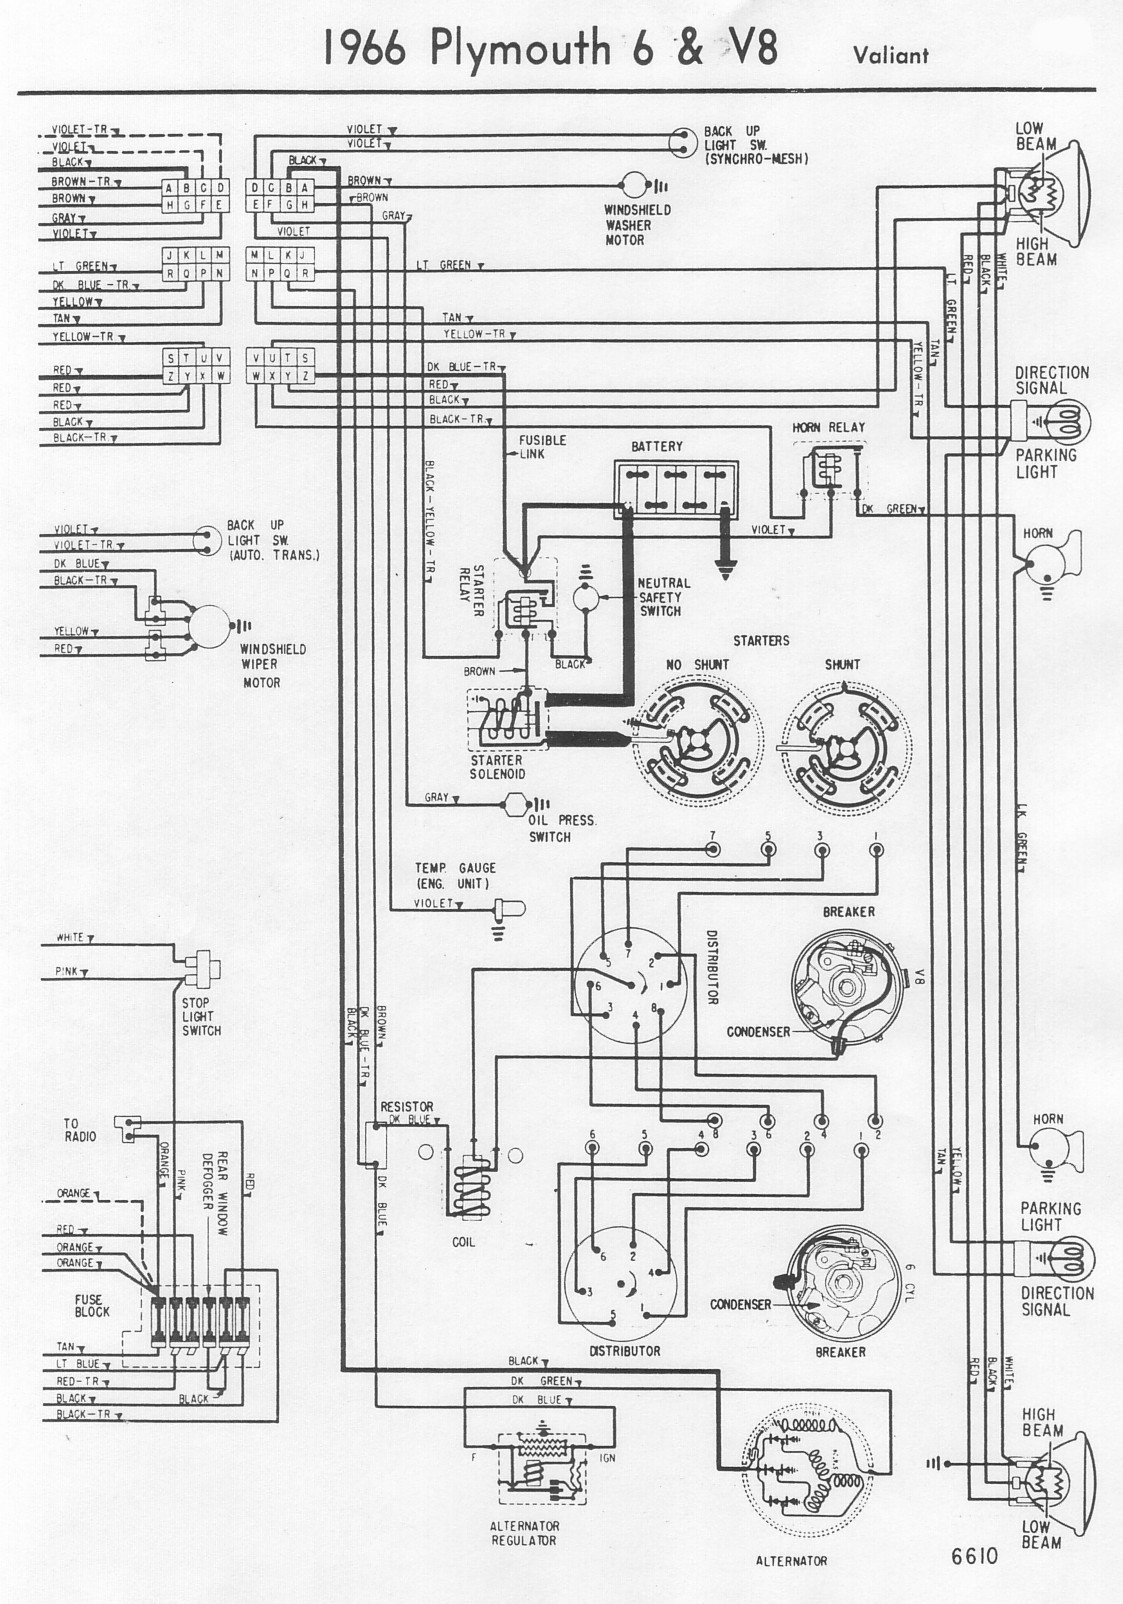 1979 plymouth wiring diagram z3 wiring library diagram rh 4 efrgh mein custombike de